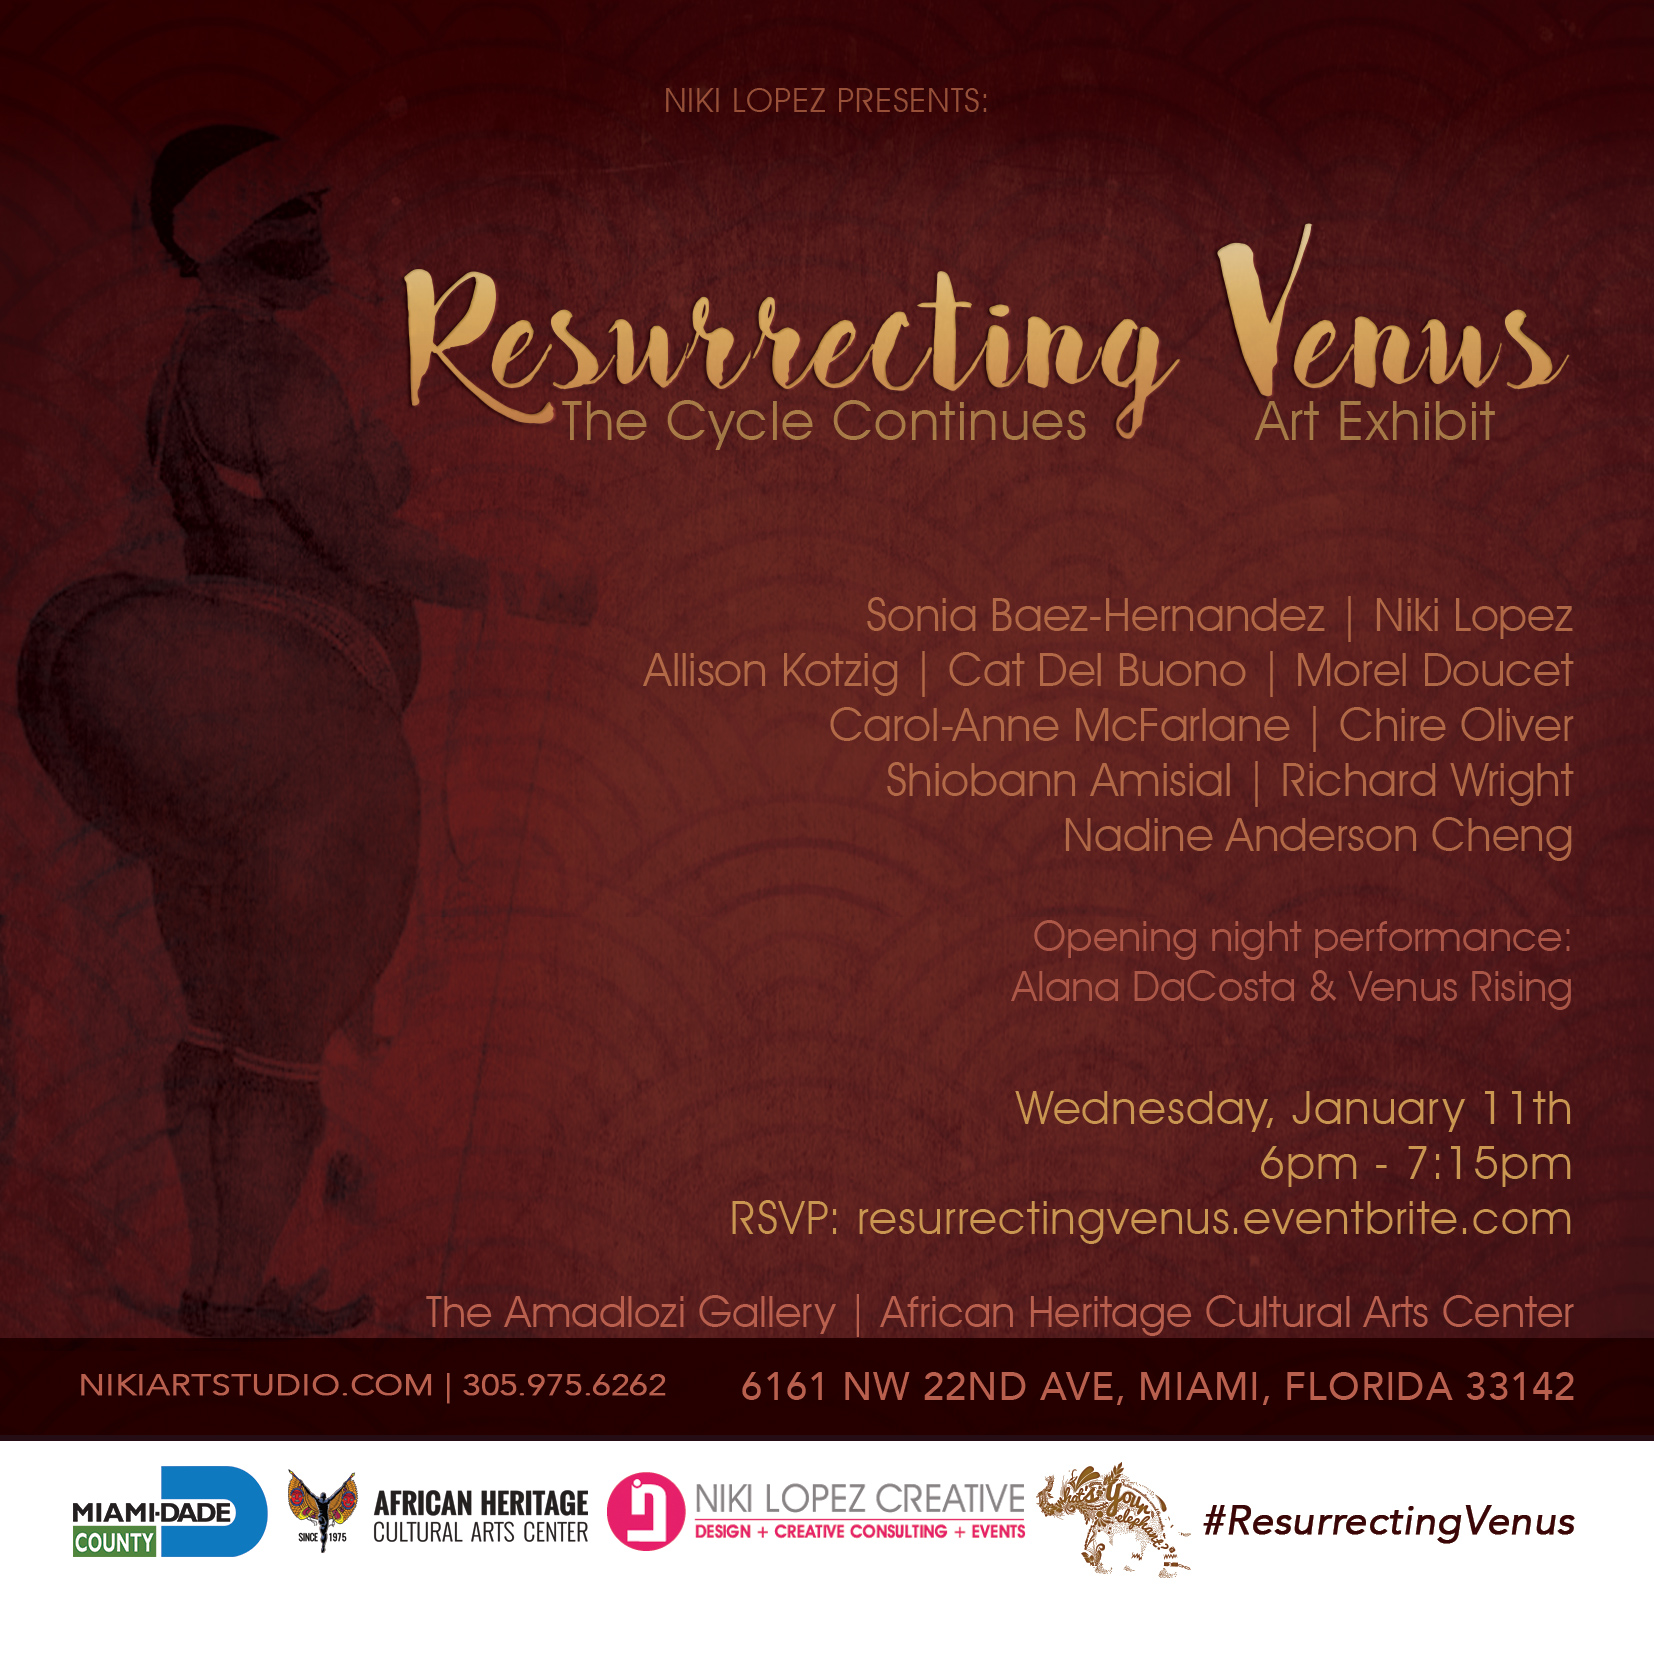 Resurrecting Venus: The Cycle Continues art exhibit - curator Niki Lopez